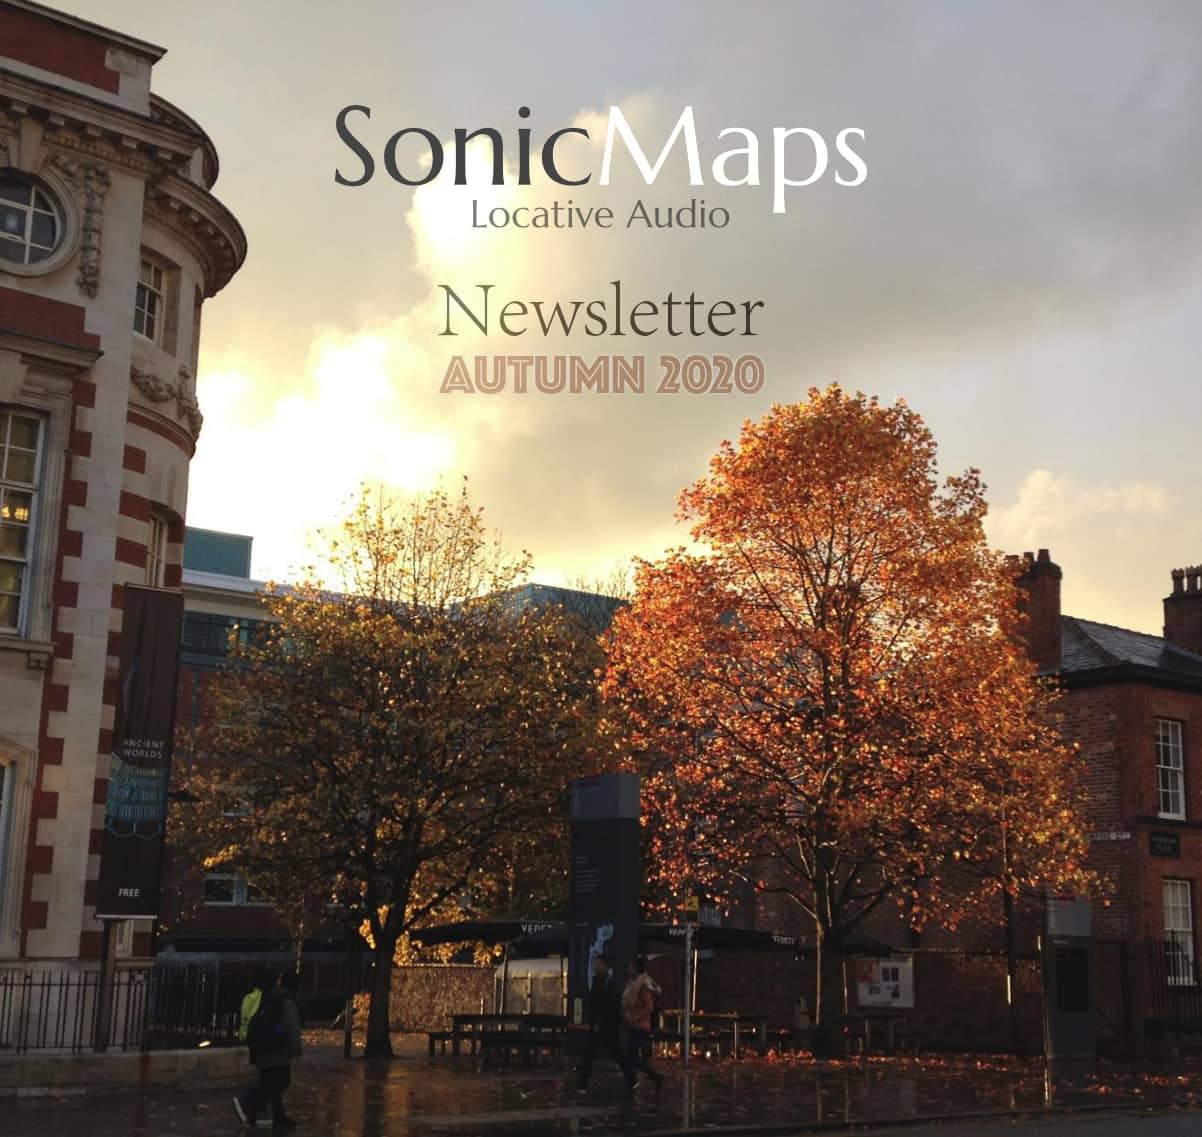 SonicMaps Newsletter Autumn 2020